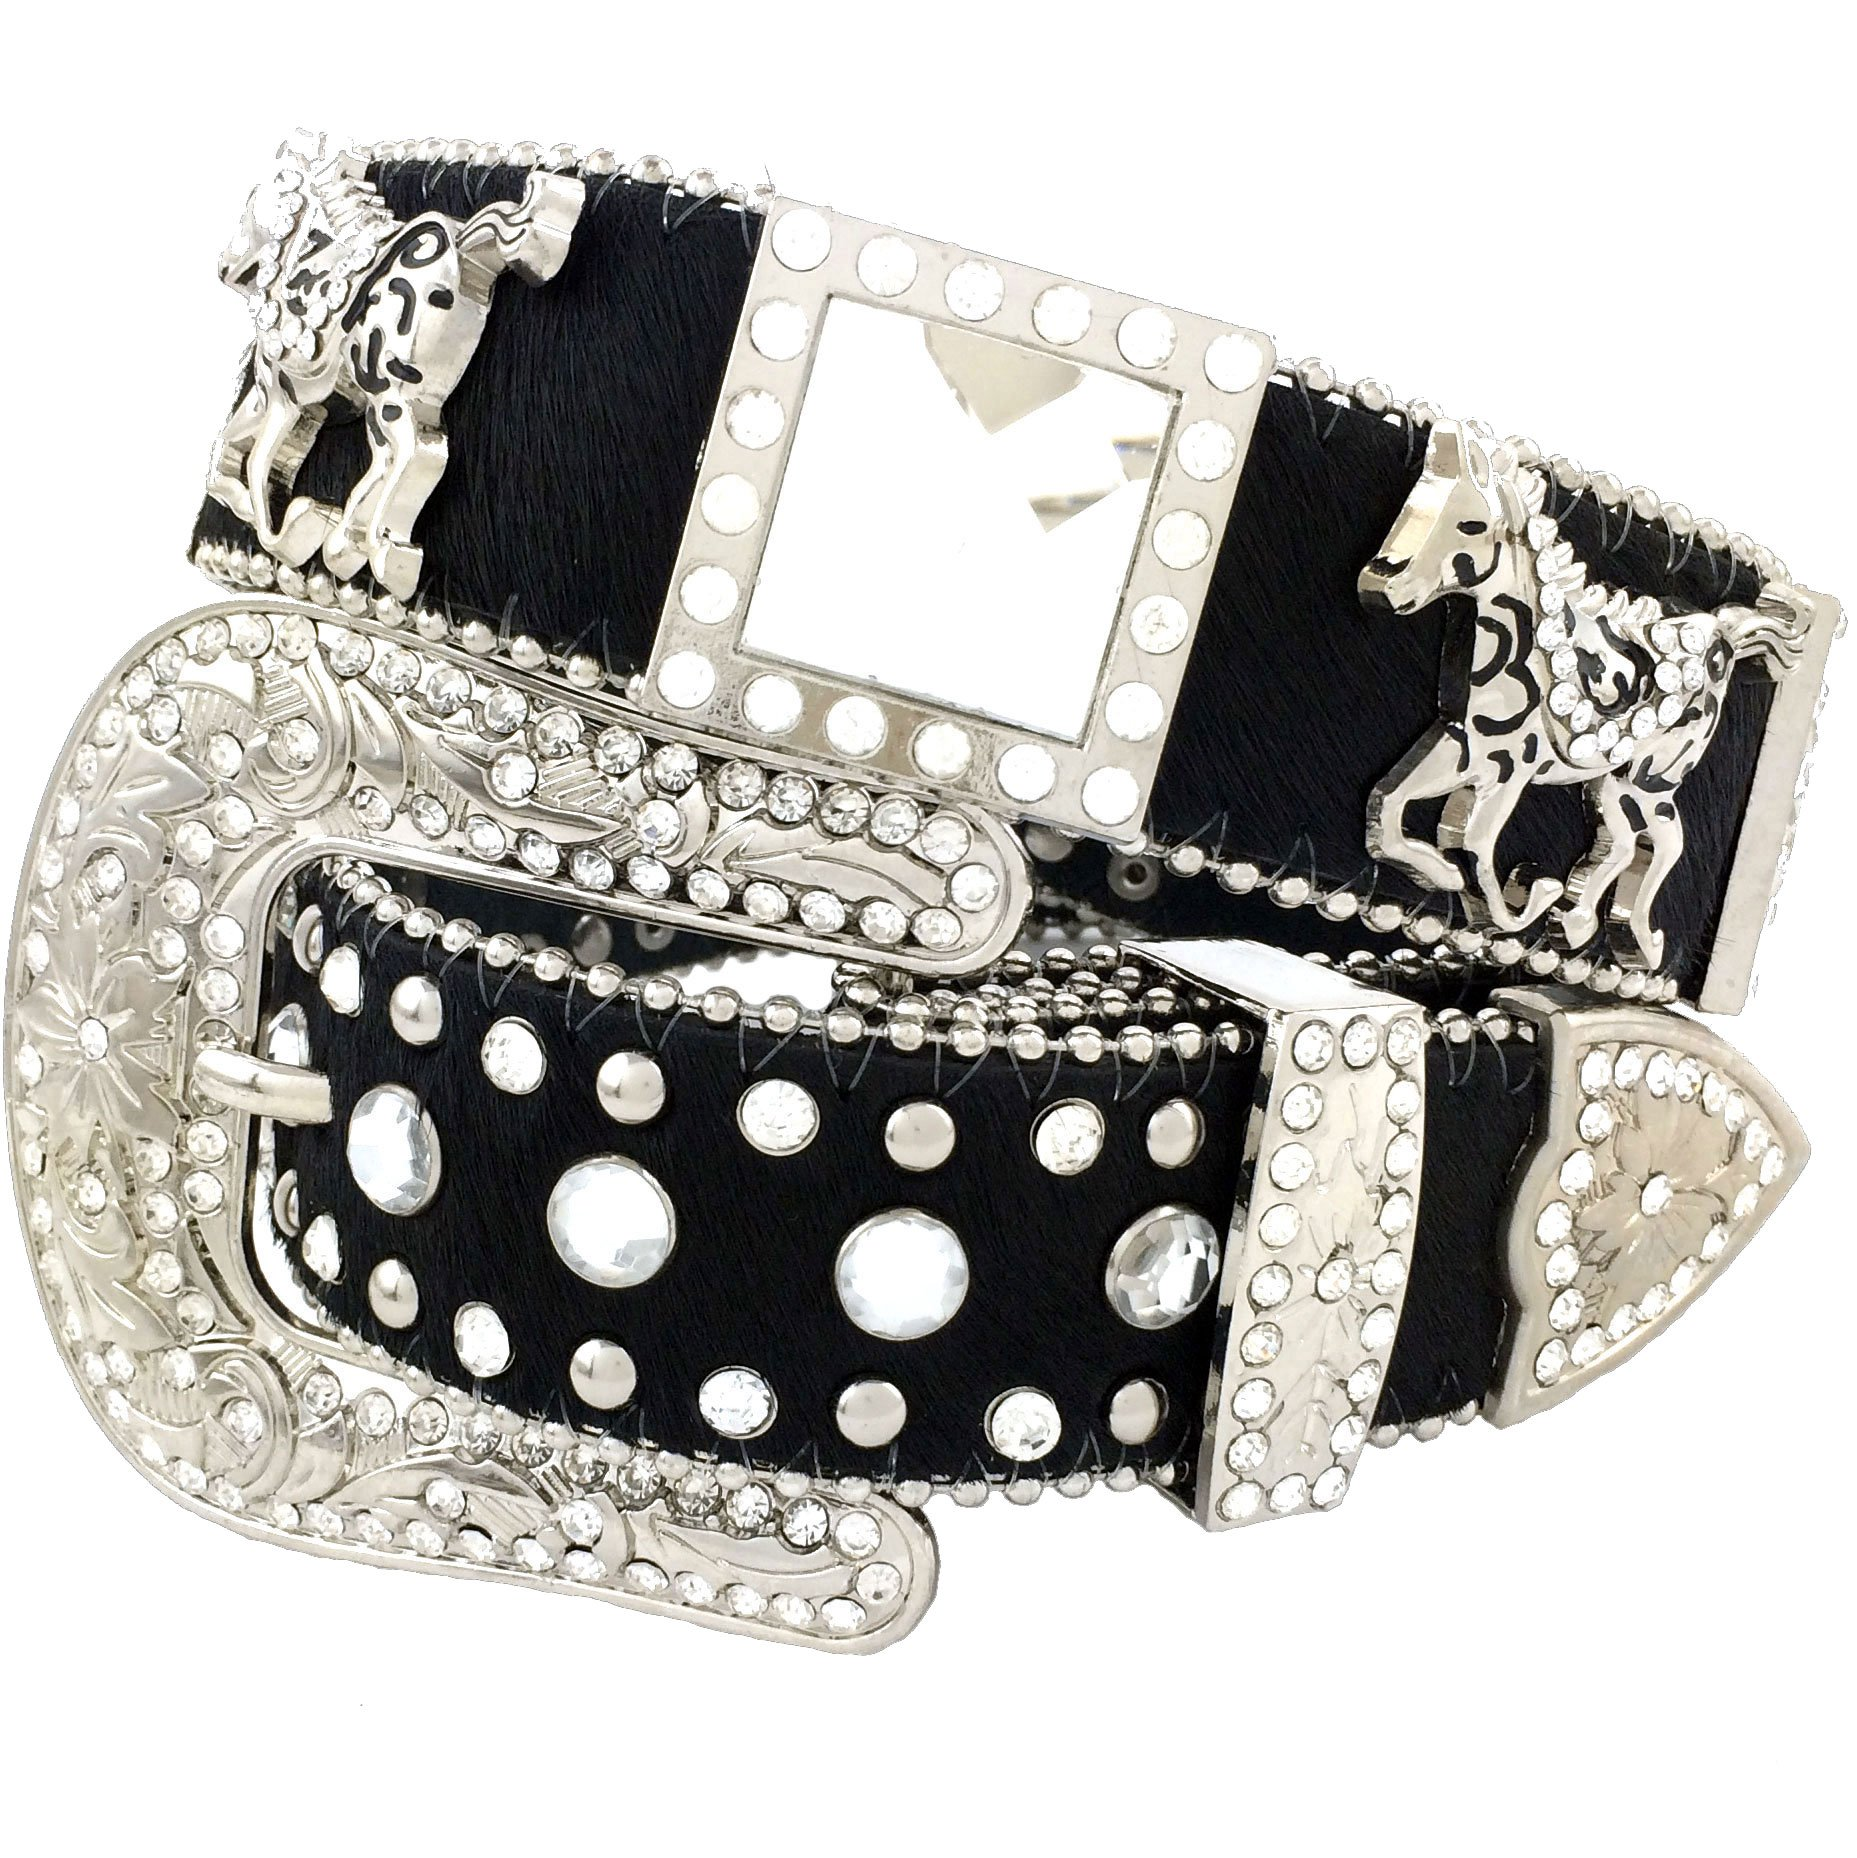 Western Peak Women's Horse Hair Square Horse and Concho Rhinestone Belt Black (M)